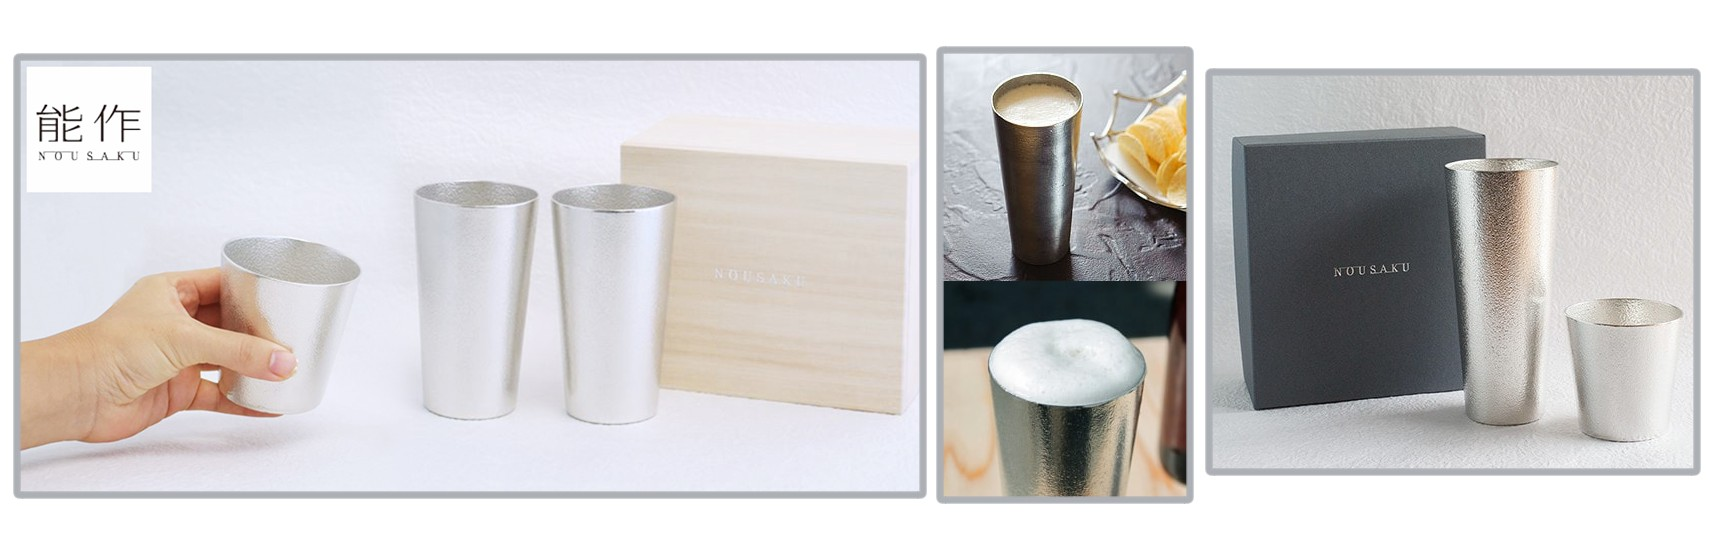 Nousaku Tin Beer Cups and Tumblers